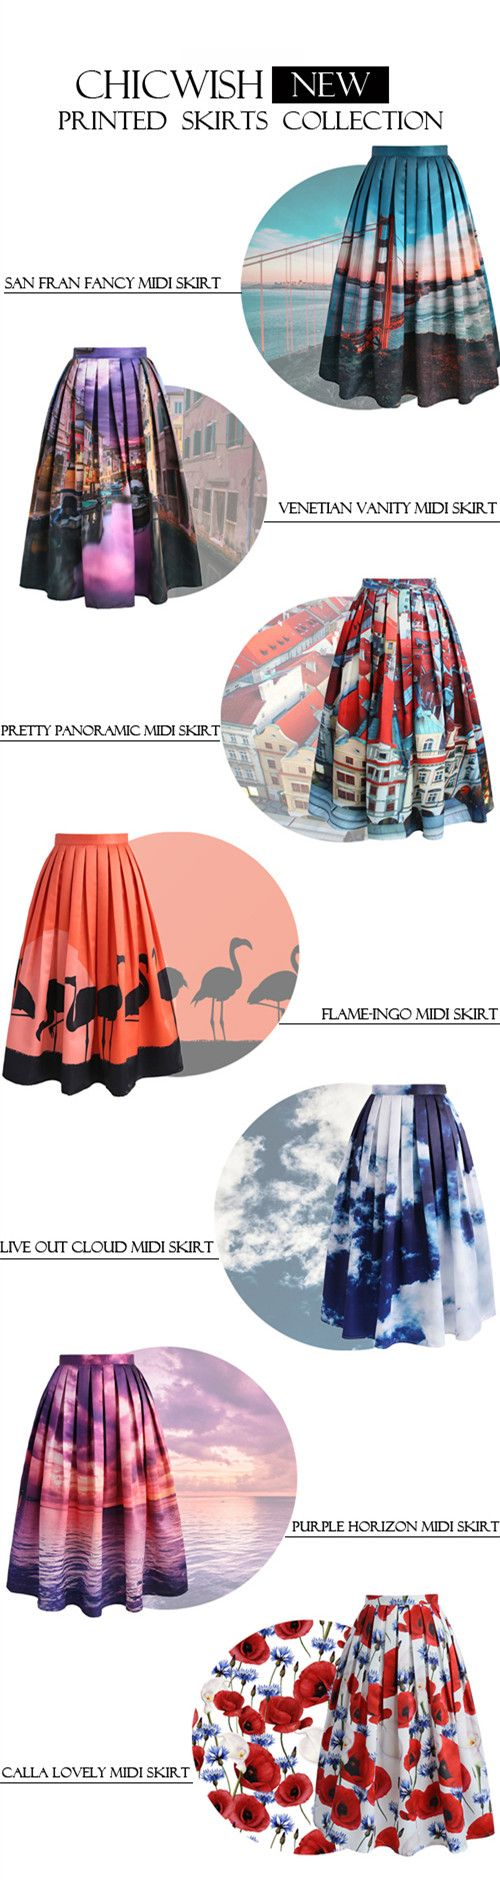 Extra 20% off Storewide  Code: THX20  Ends Nov.10th  Chicwish NEW printed skirts collection. Discover more at Chicwish.com